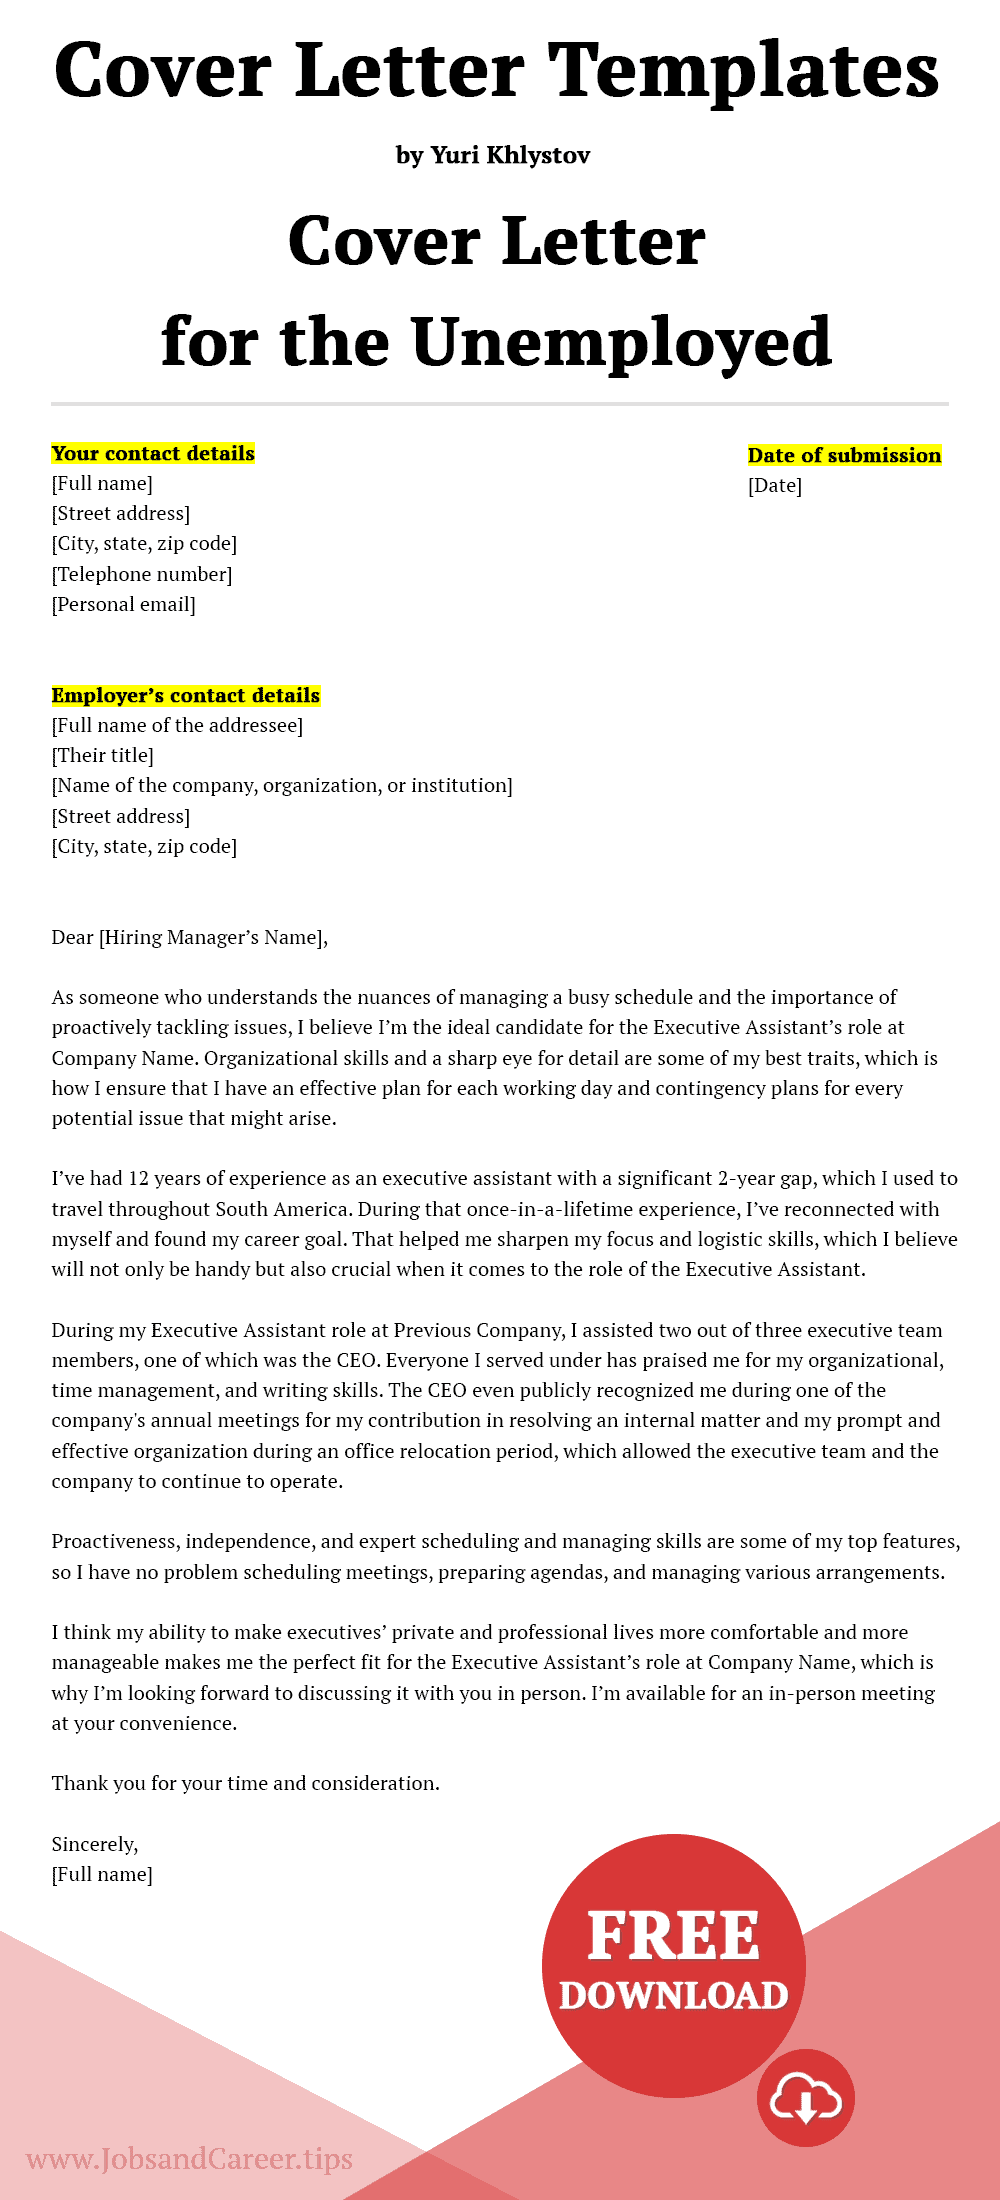 Click to download the cover letter template for the unemployed